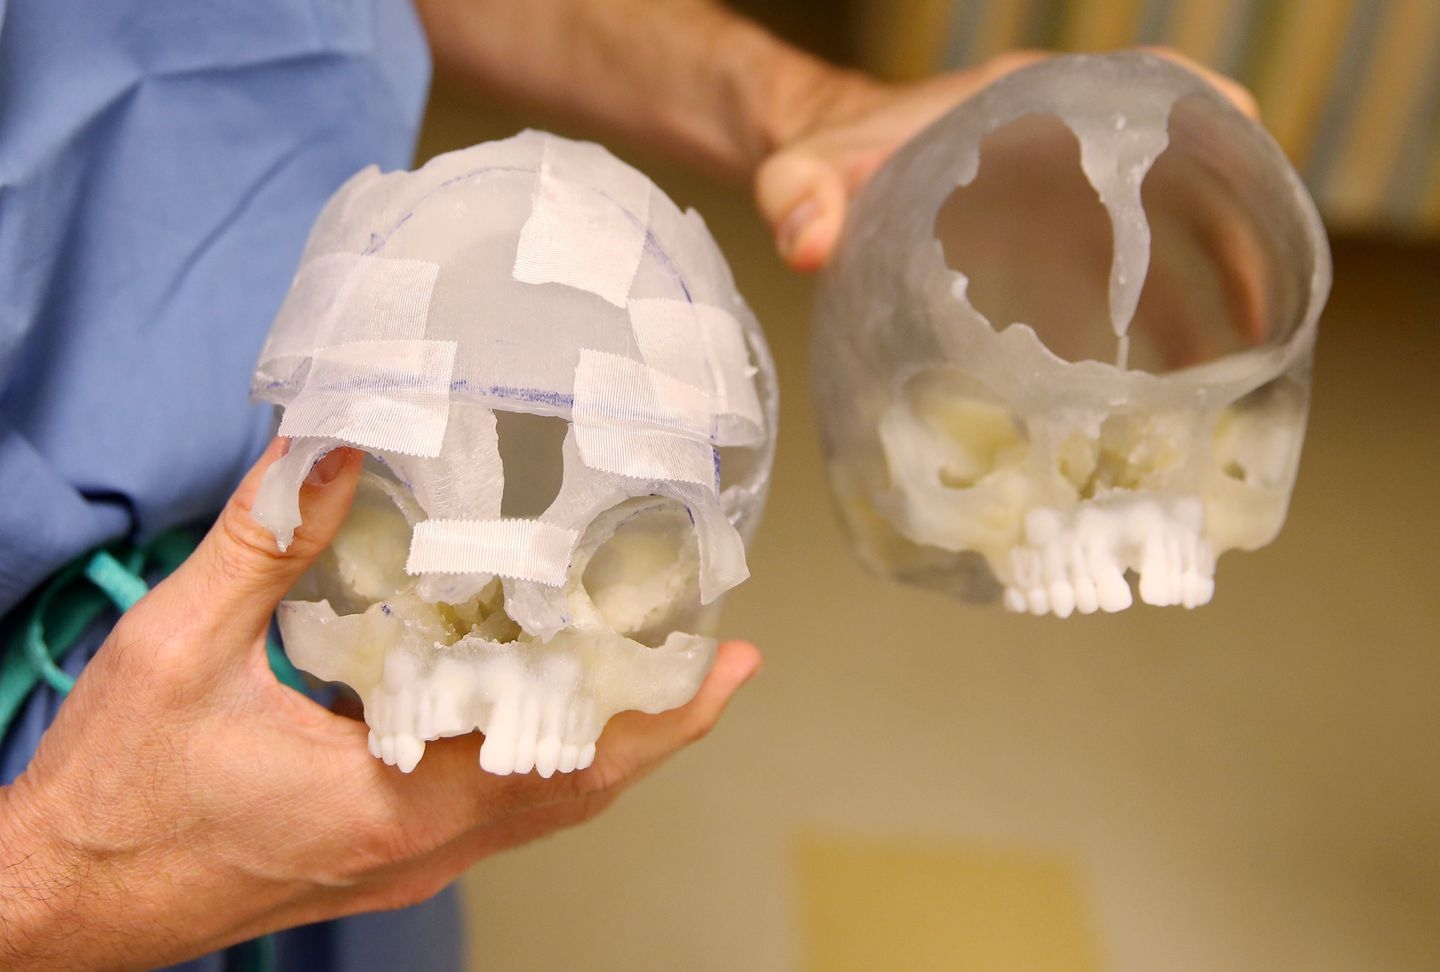 John G. Meara, Children's plastic surgeon-in-chief held up a 3-d model of Zoey's skull (right) and the model showing how the surgery would be performed at Boston Children's Hospital.